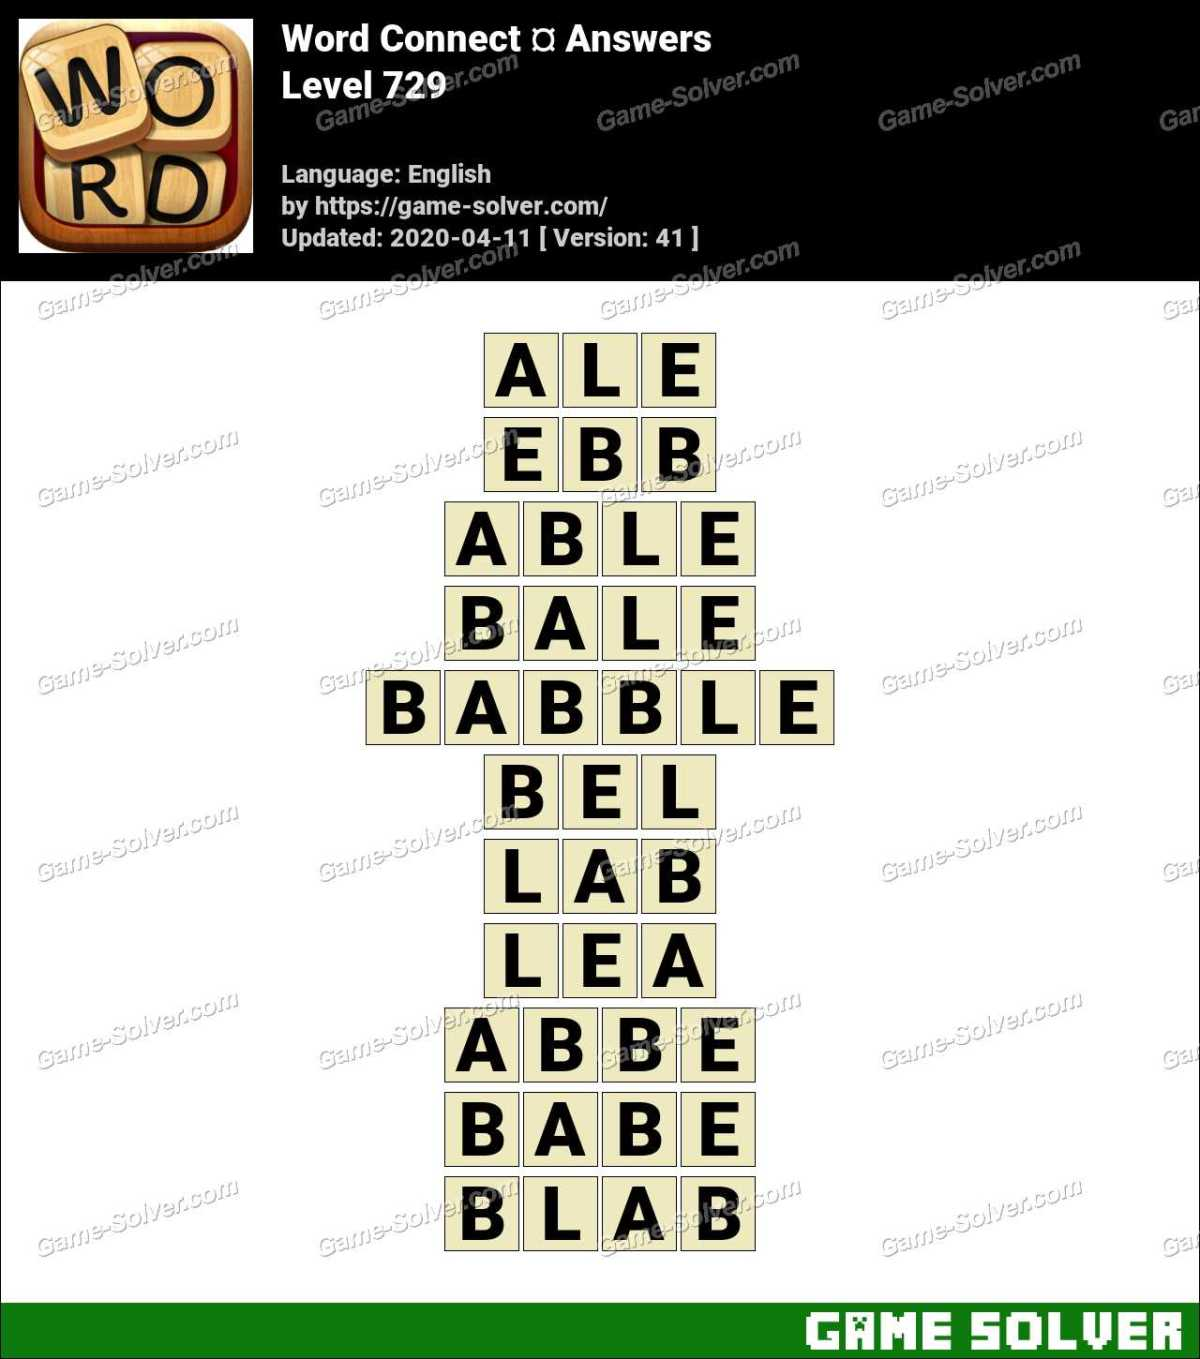 Word Connect Level 729 Answers